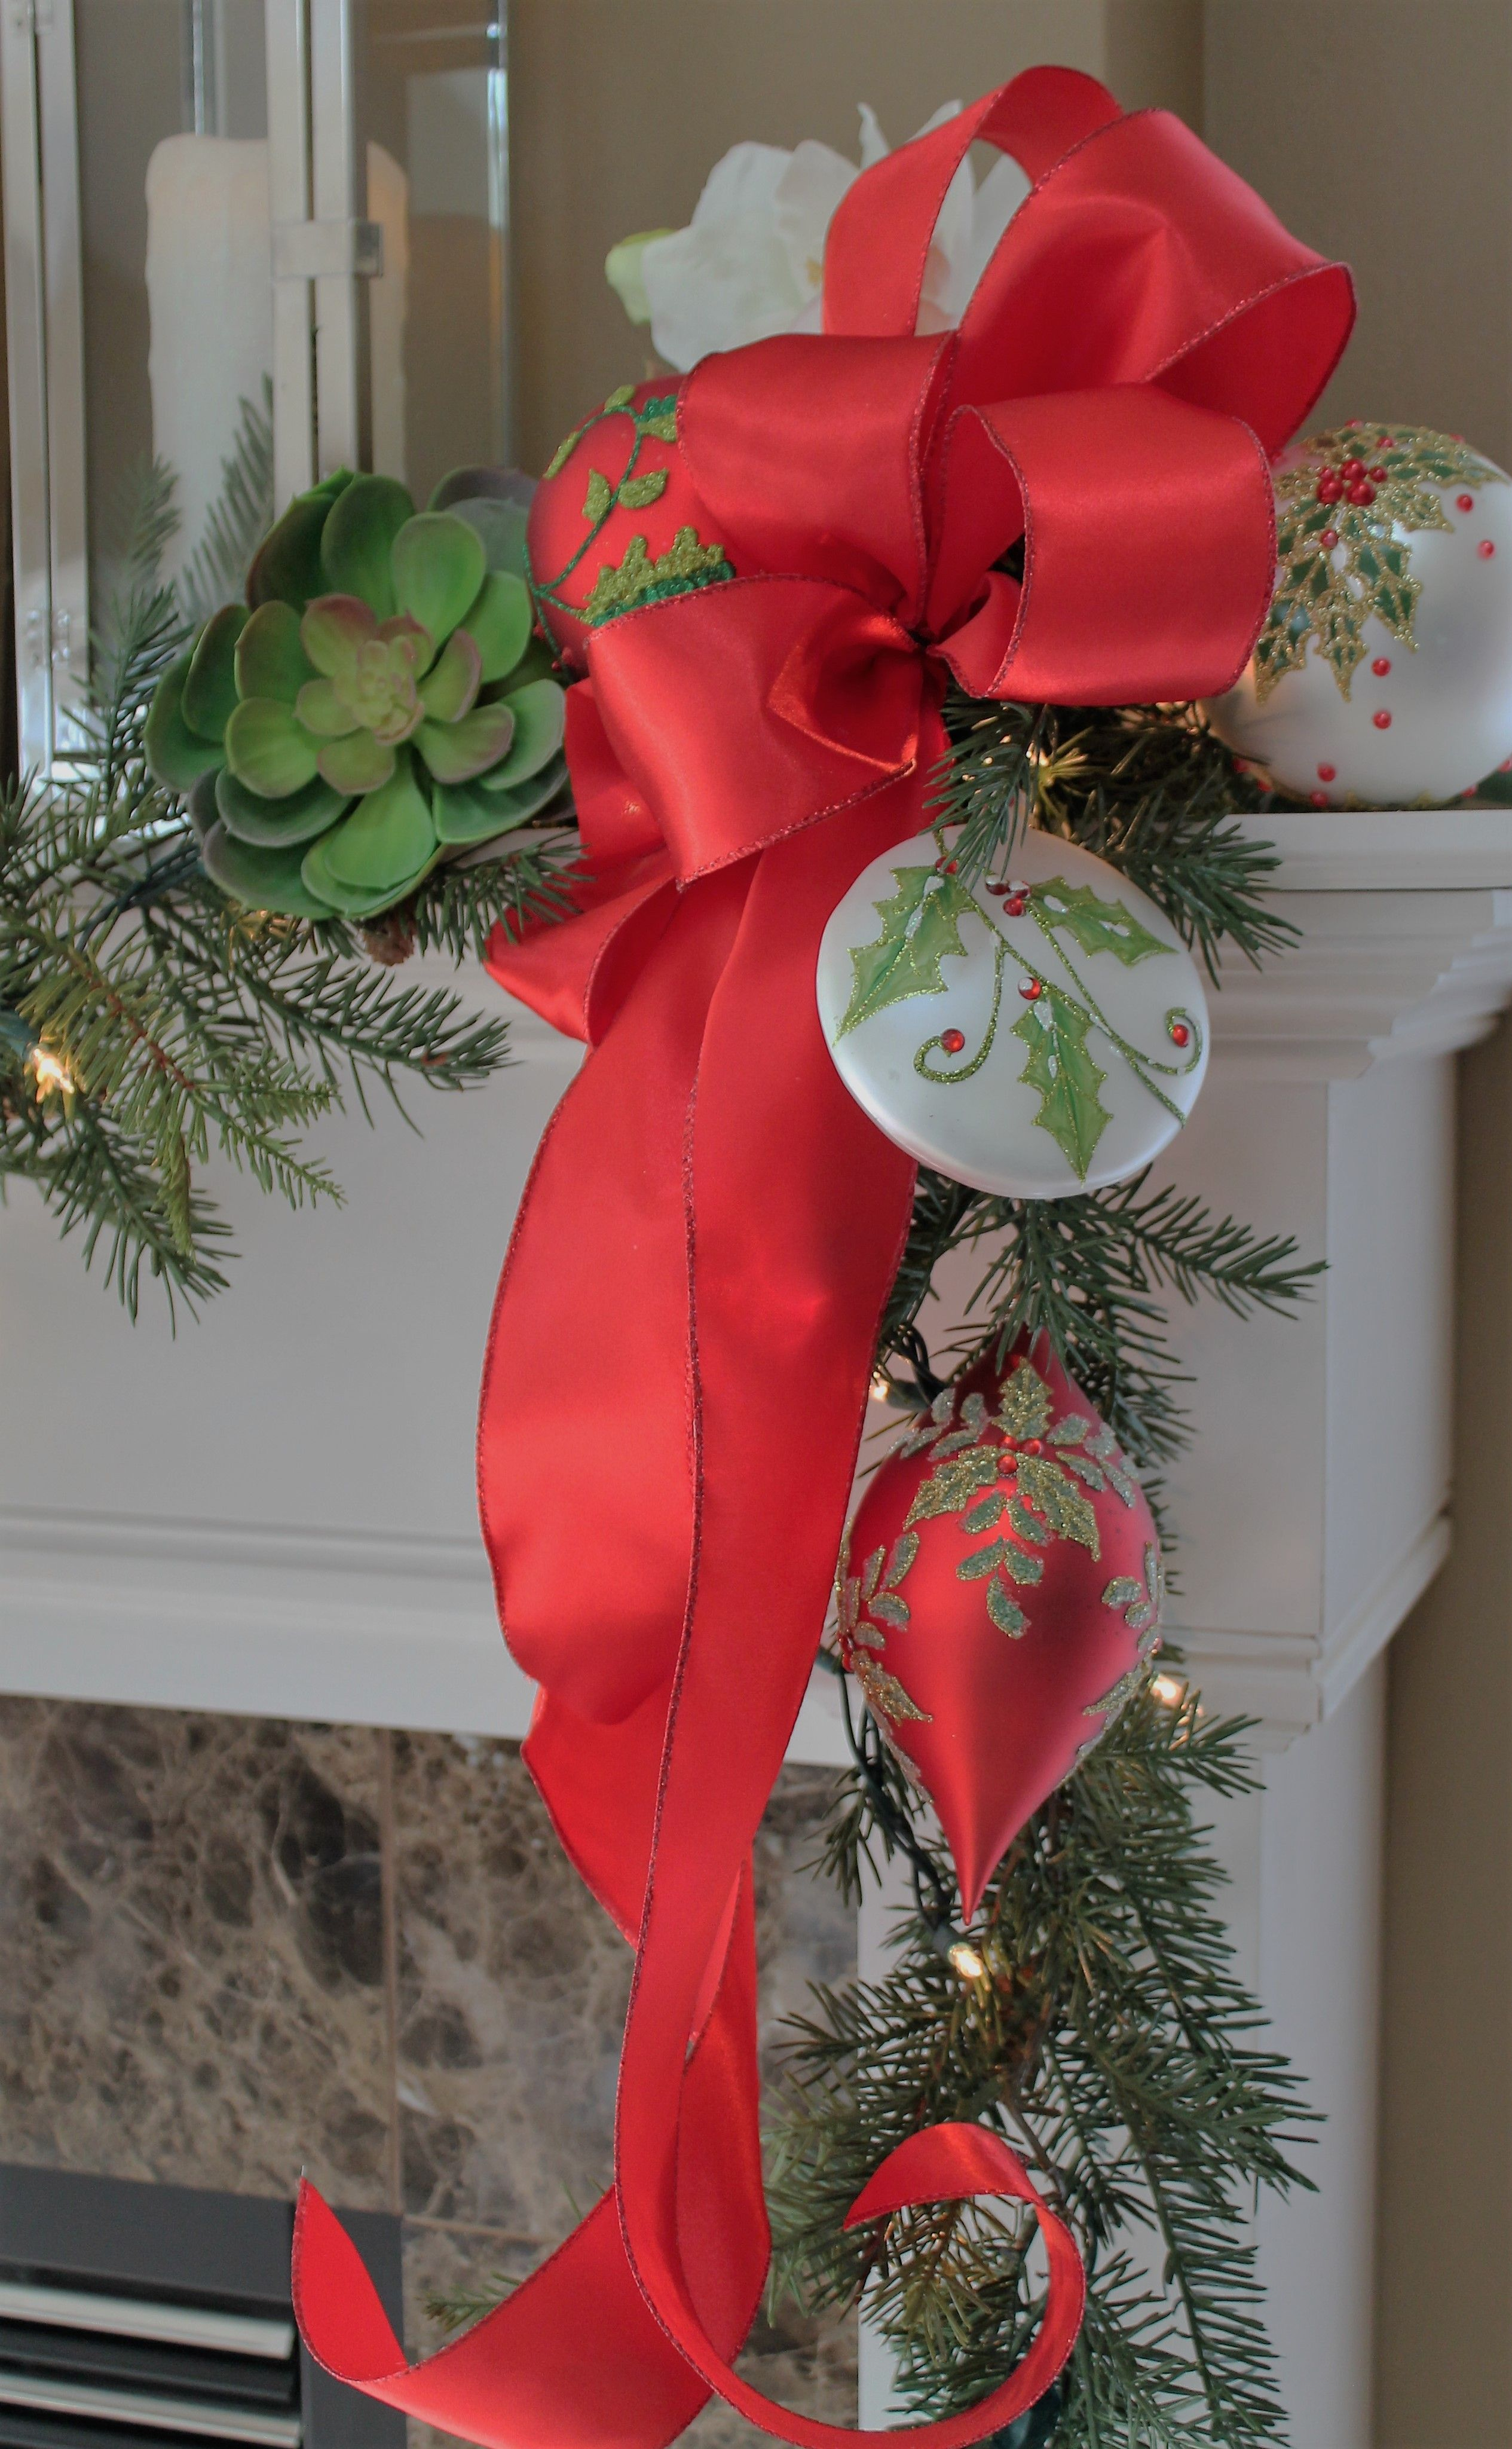 Design And Decorate The Mantel With Ornaments And Succulents From